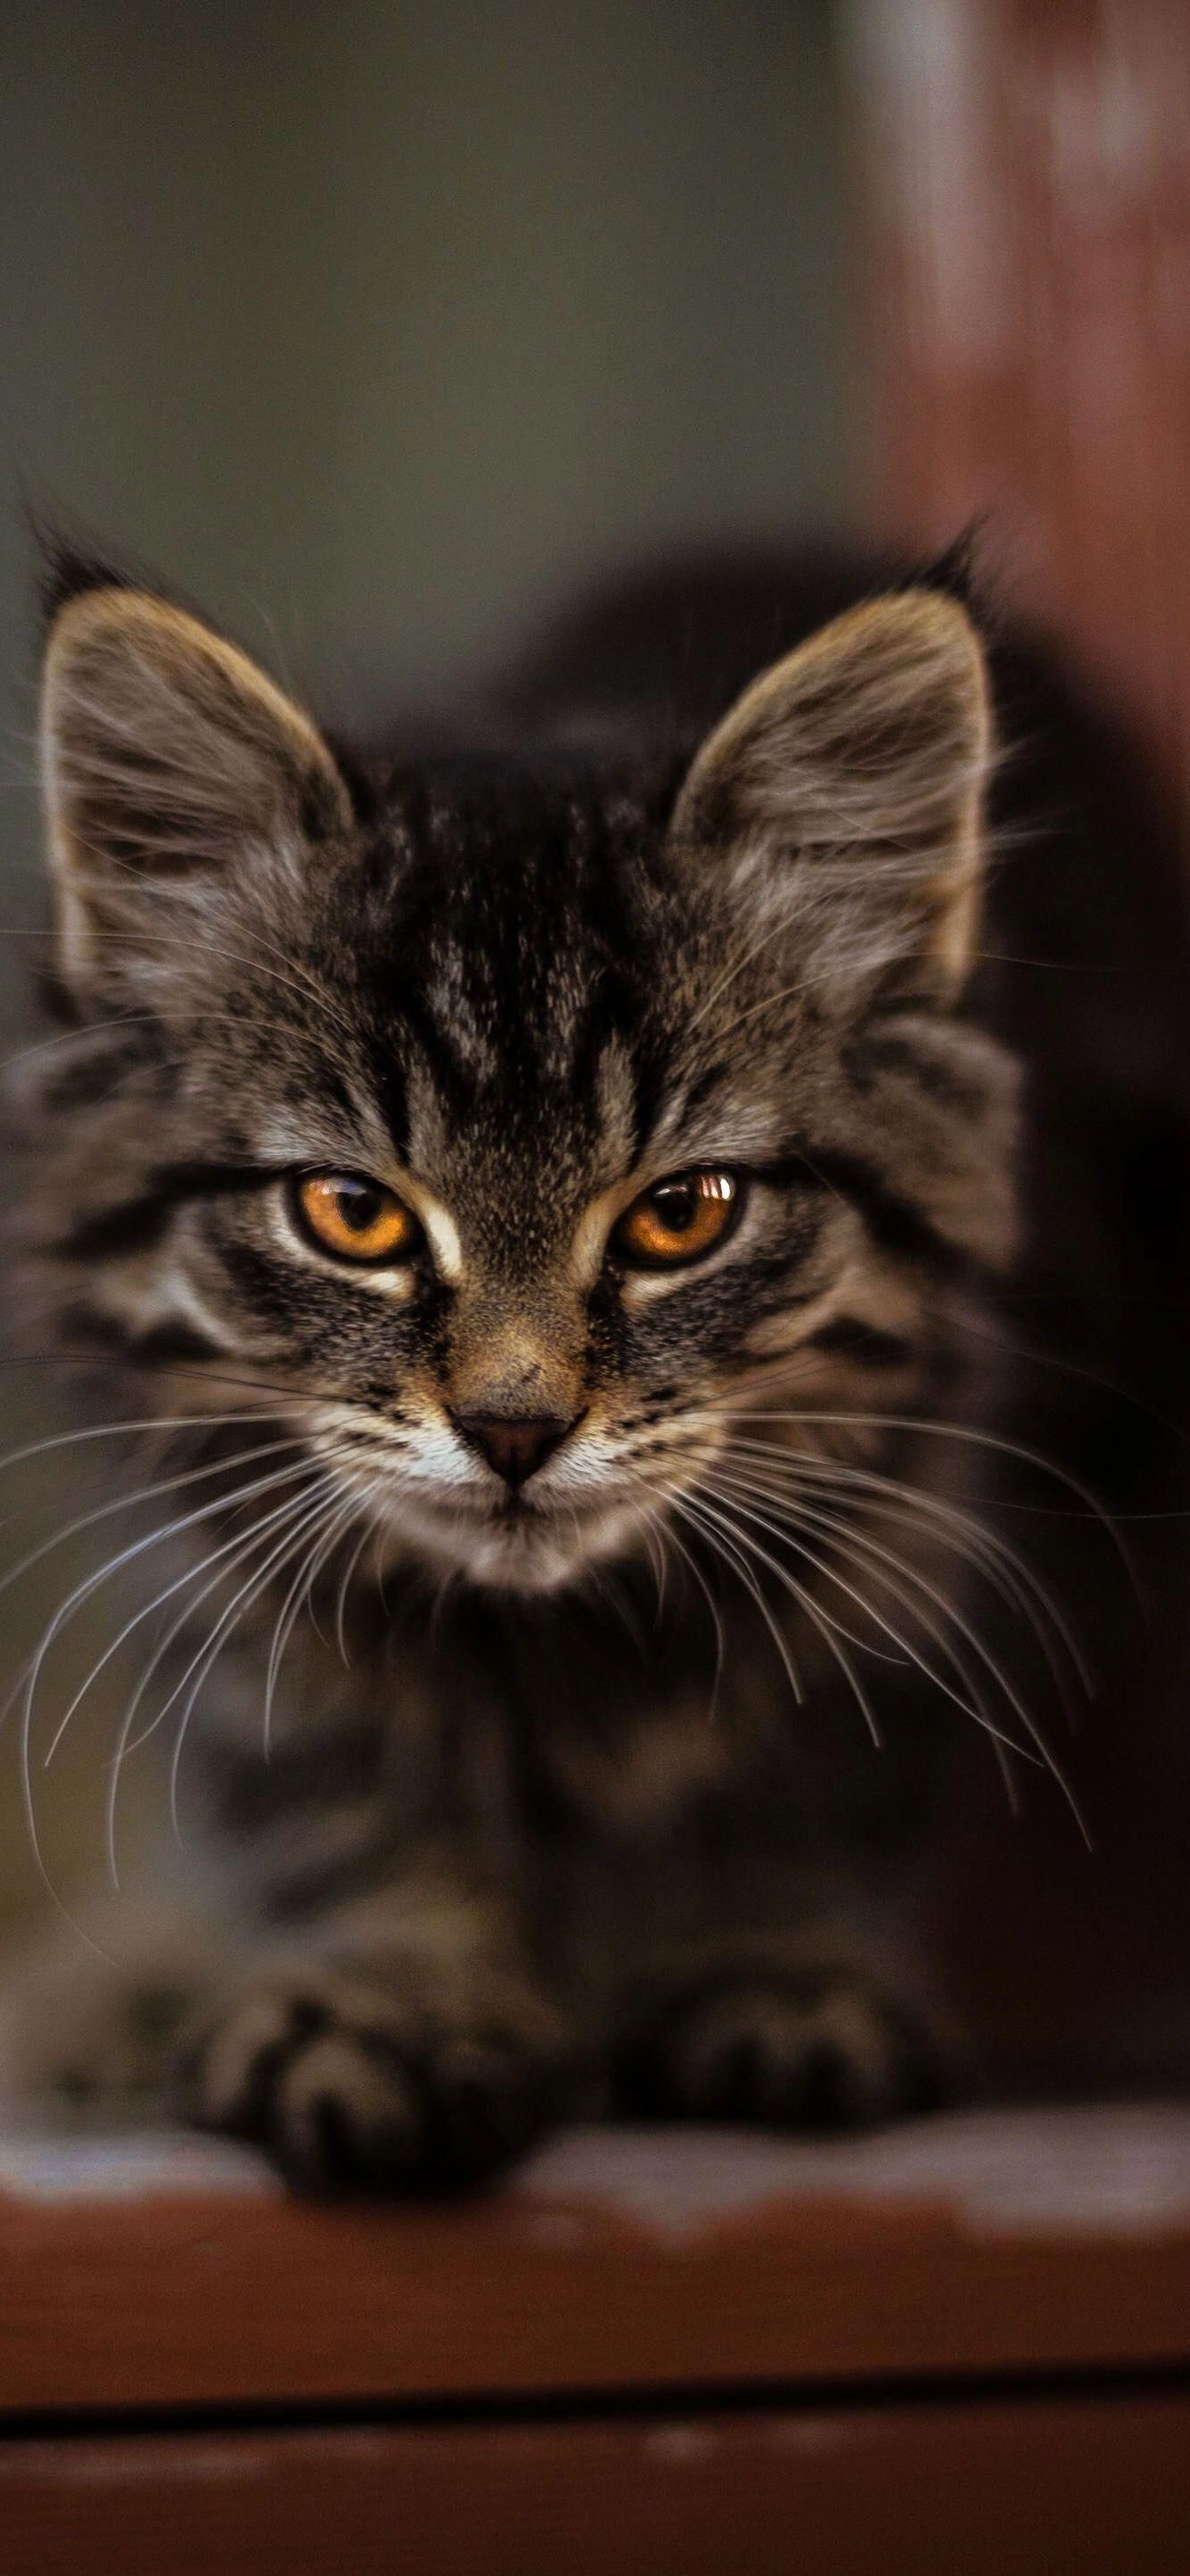 Such Intense Eyes On This Kitten Mainecooncats Silver Tabby Cat Tabby Cat Pictures Cats